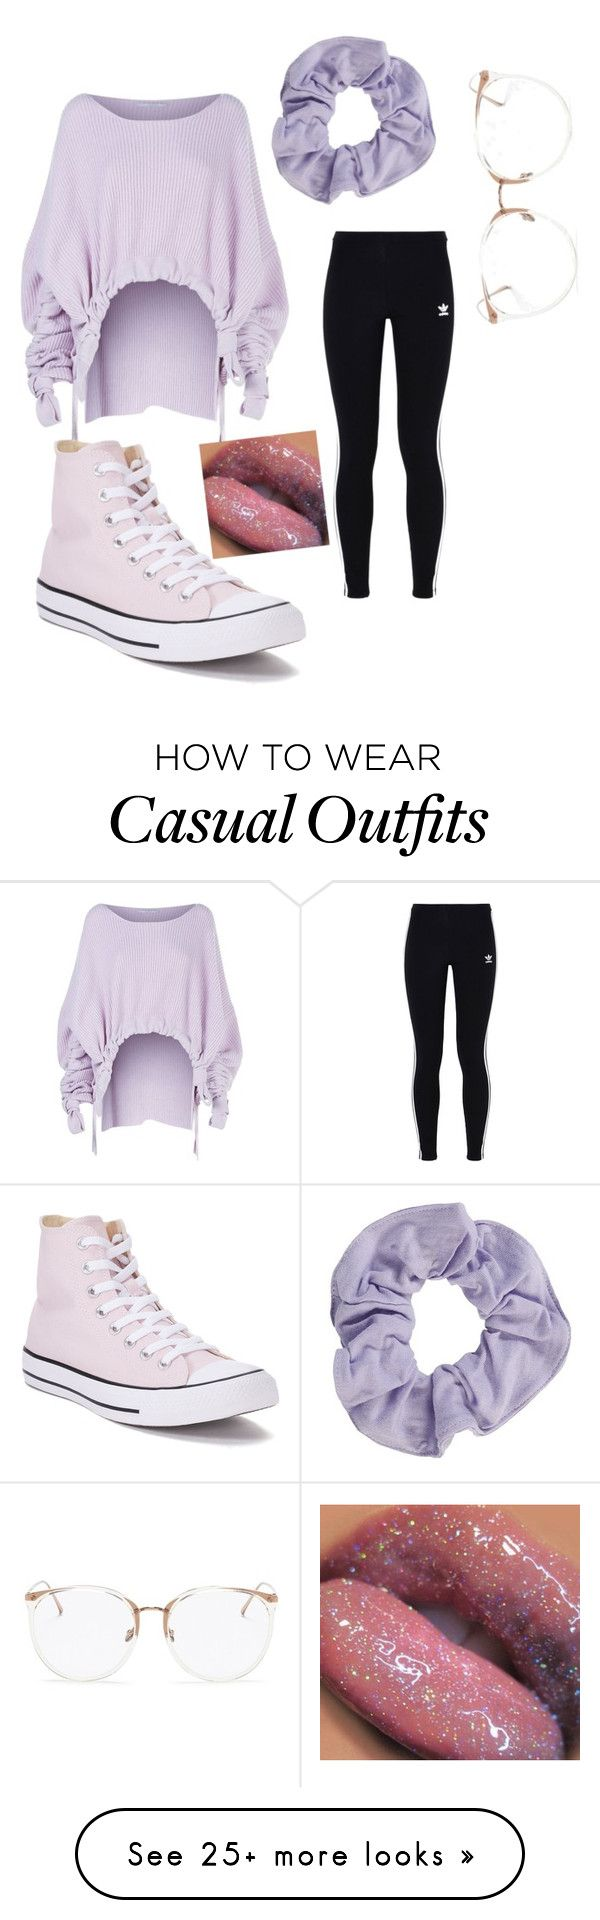 """""""Purple pastel n casual"""" by mahiyabrown on Polyvore featuring STELLA McCARTNEY, adidas Originals, Converse, Linda Farrow, contest, pastelsweaters, powerlook and NYFWPlaid"""